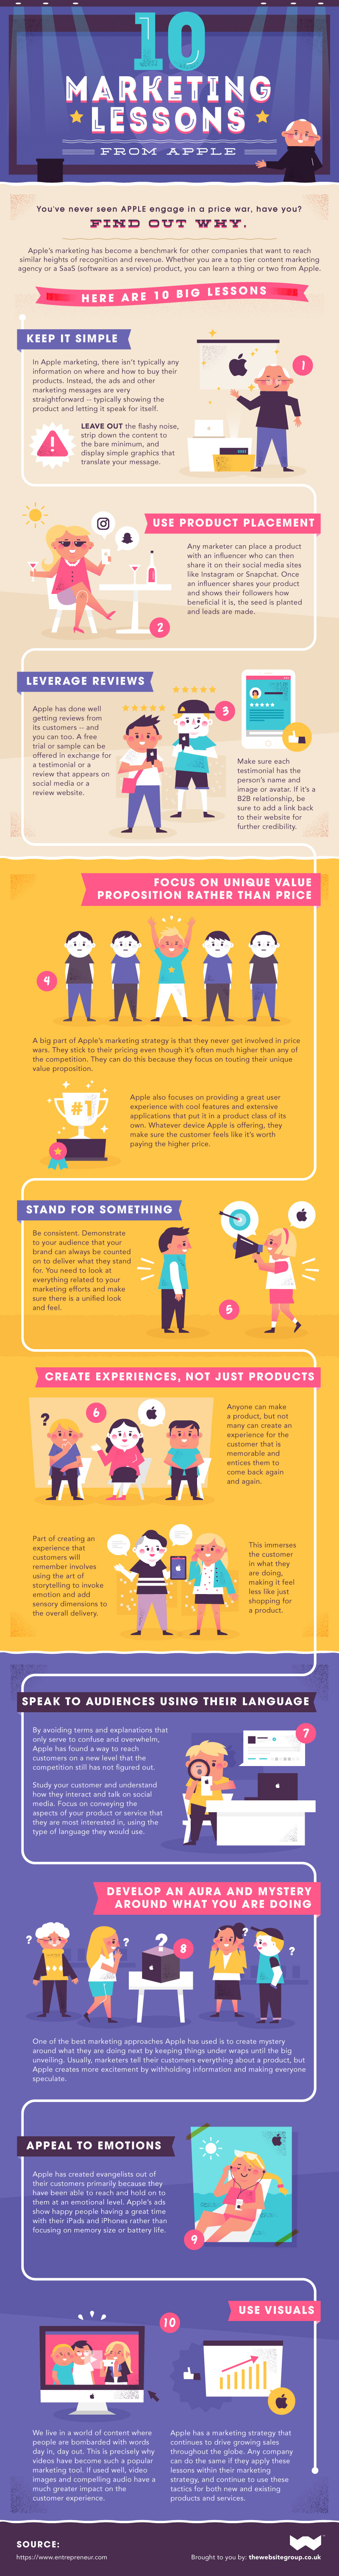 10-Marketing-Lessons-from-Apple-Infographic